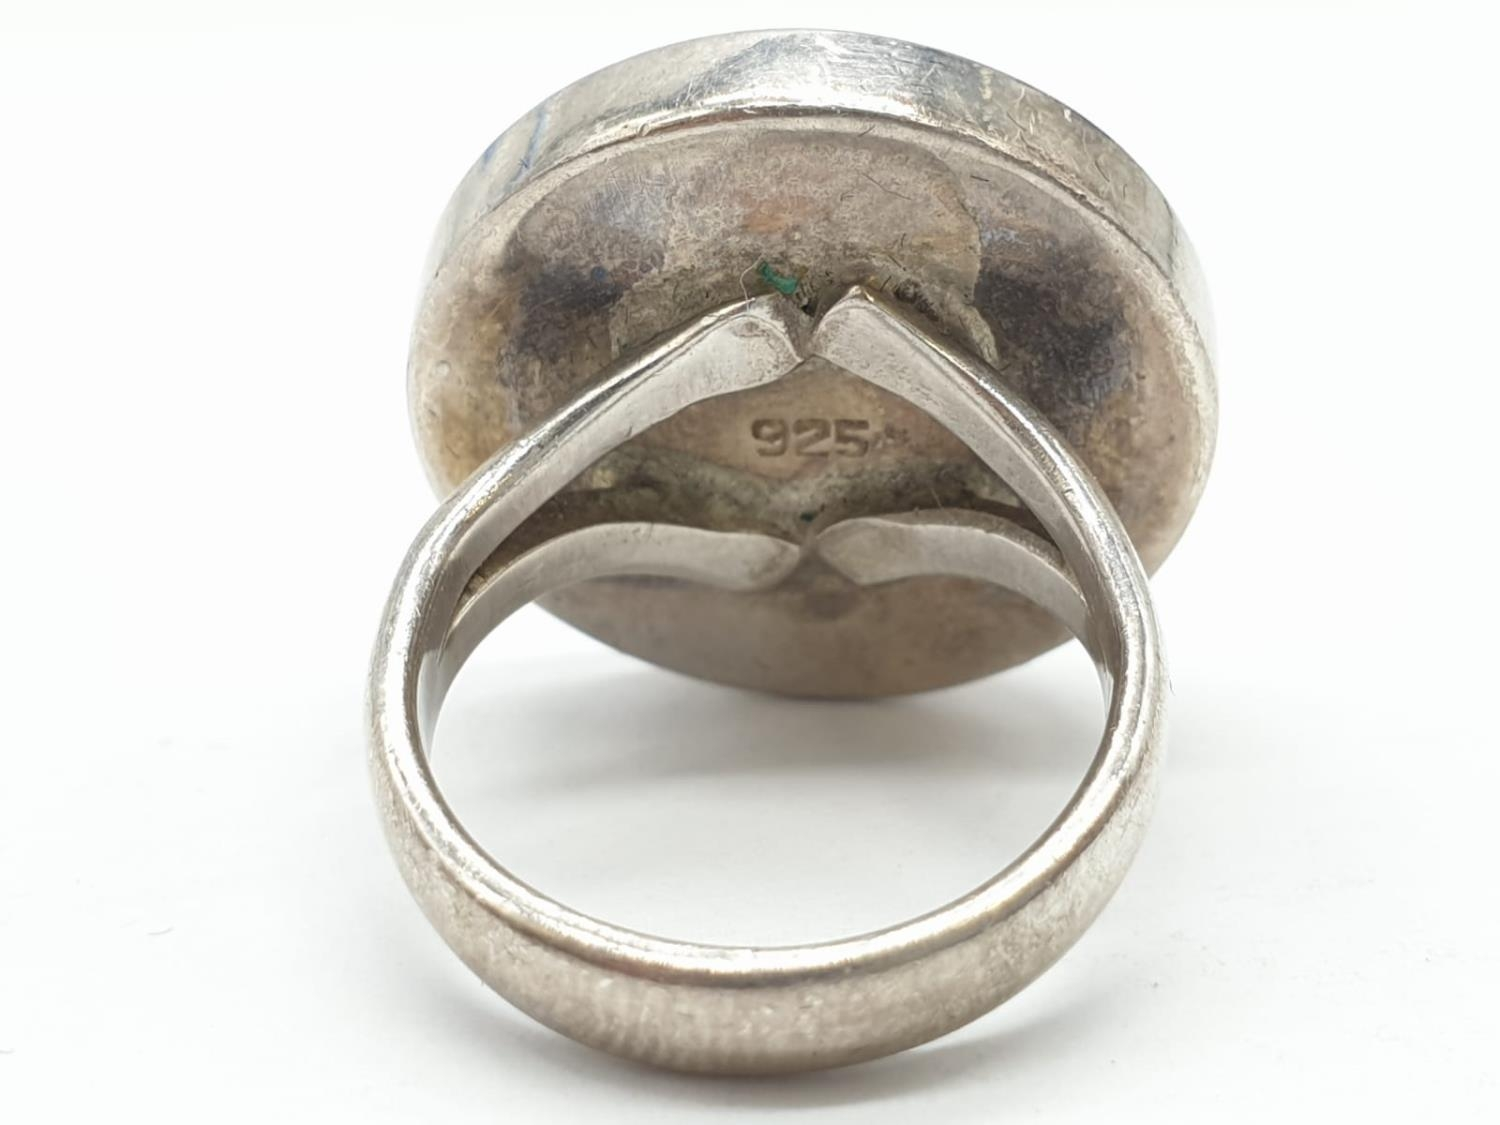 Silver ring having large circular Agate stone to top. Size L. - Image 6 of 6